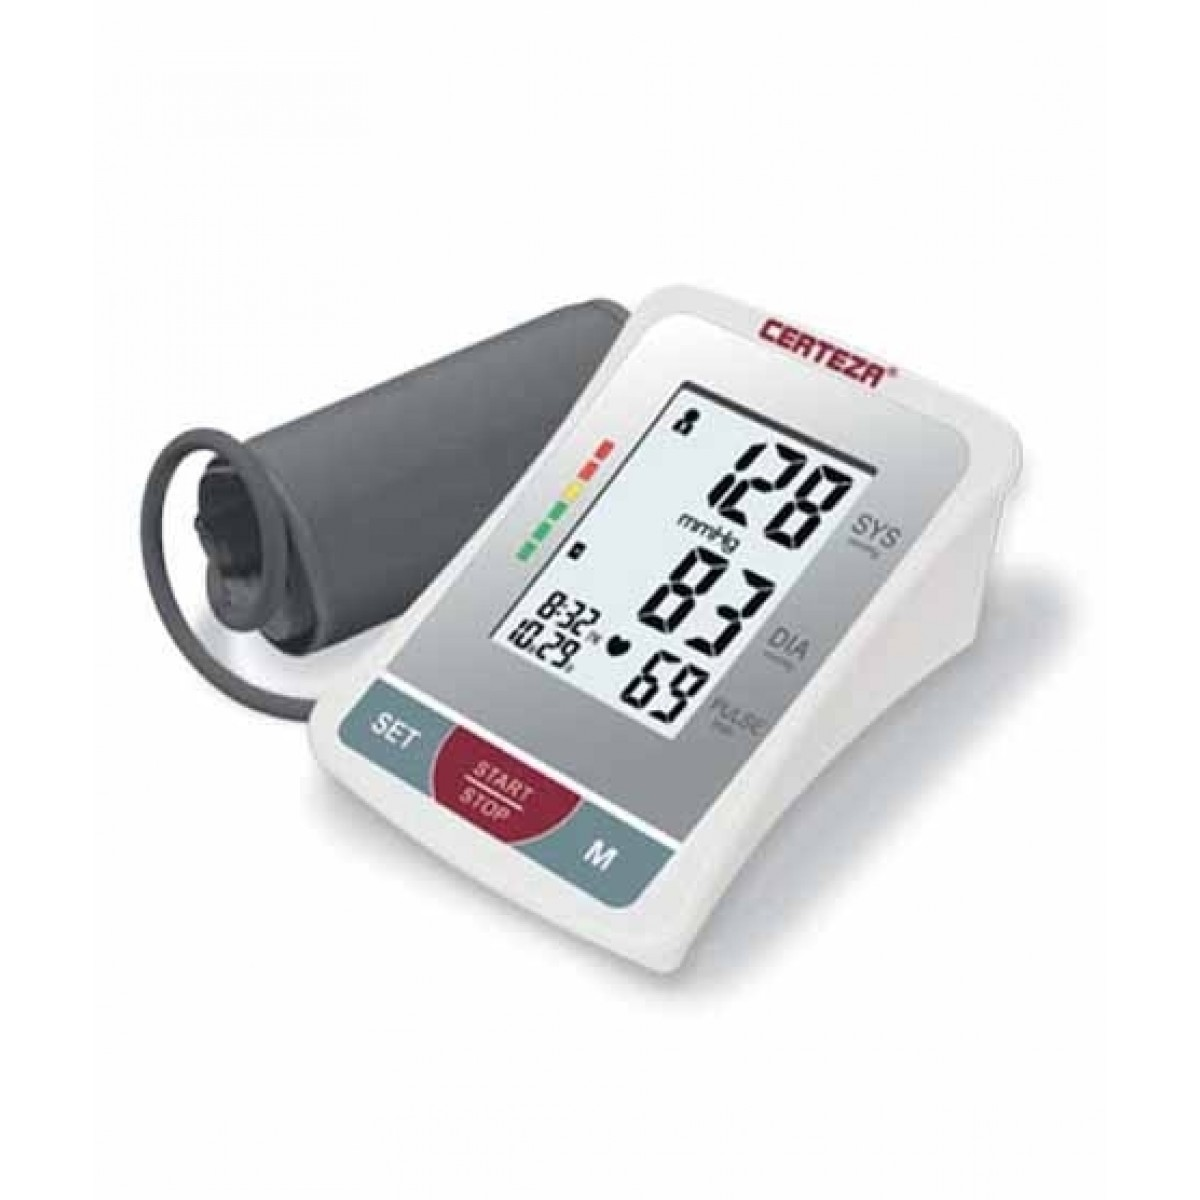 Certeza Arm Digital Blood Pressure Monitor with Adapter (BM-407AD)